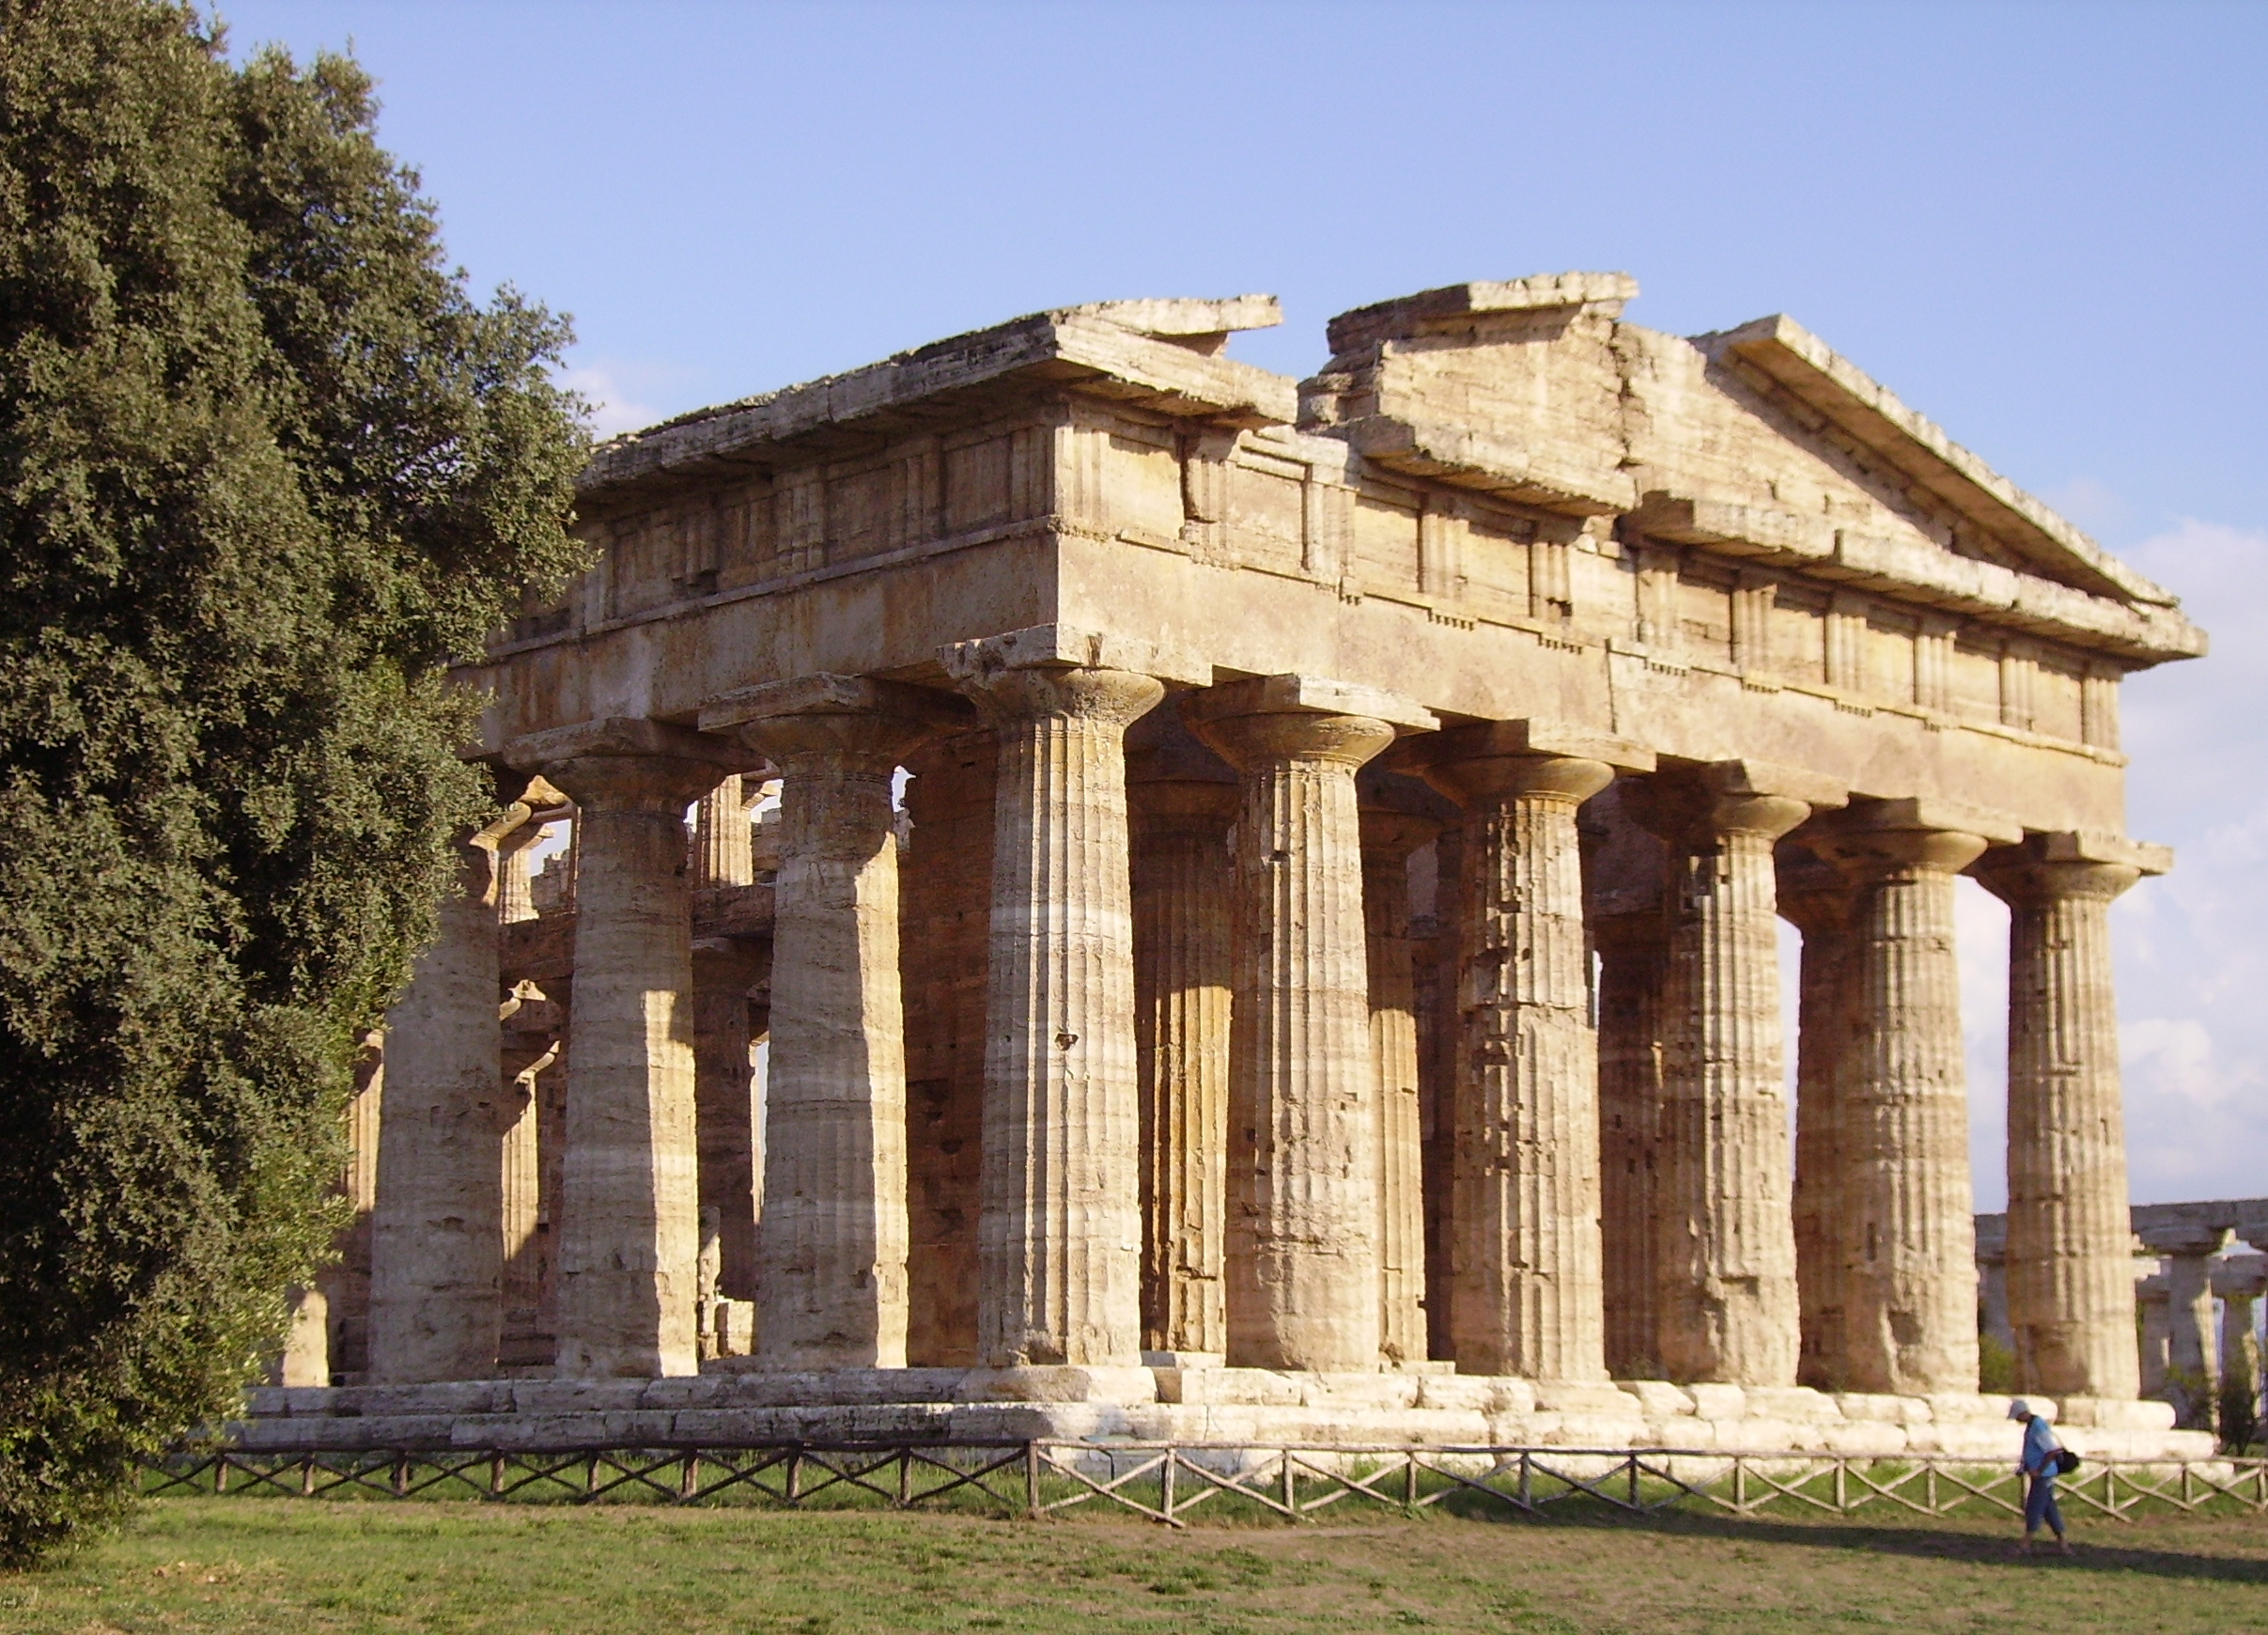 Temple_of_Apollo28.jpg